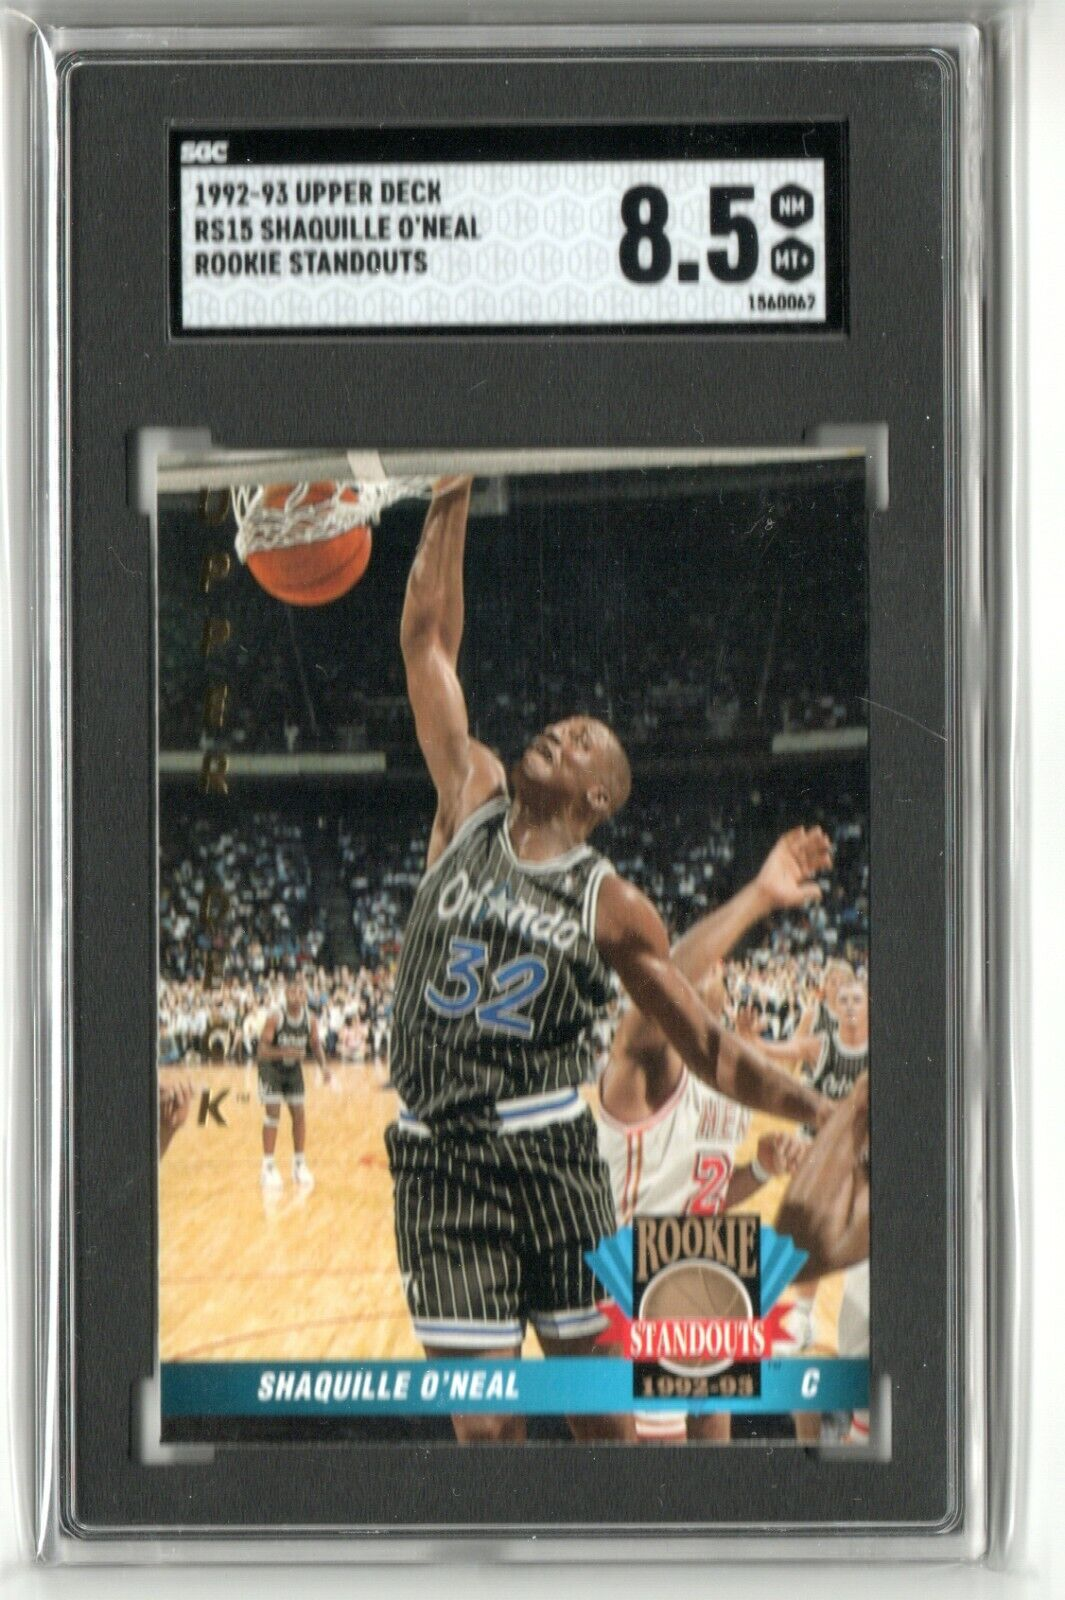 SHAQUILLE O NEAL 1992-93 Upper Deck Rookie Standouts SGC 8.5 - $5.50